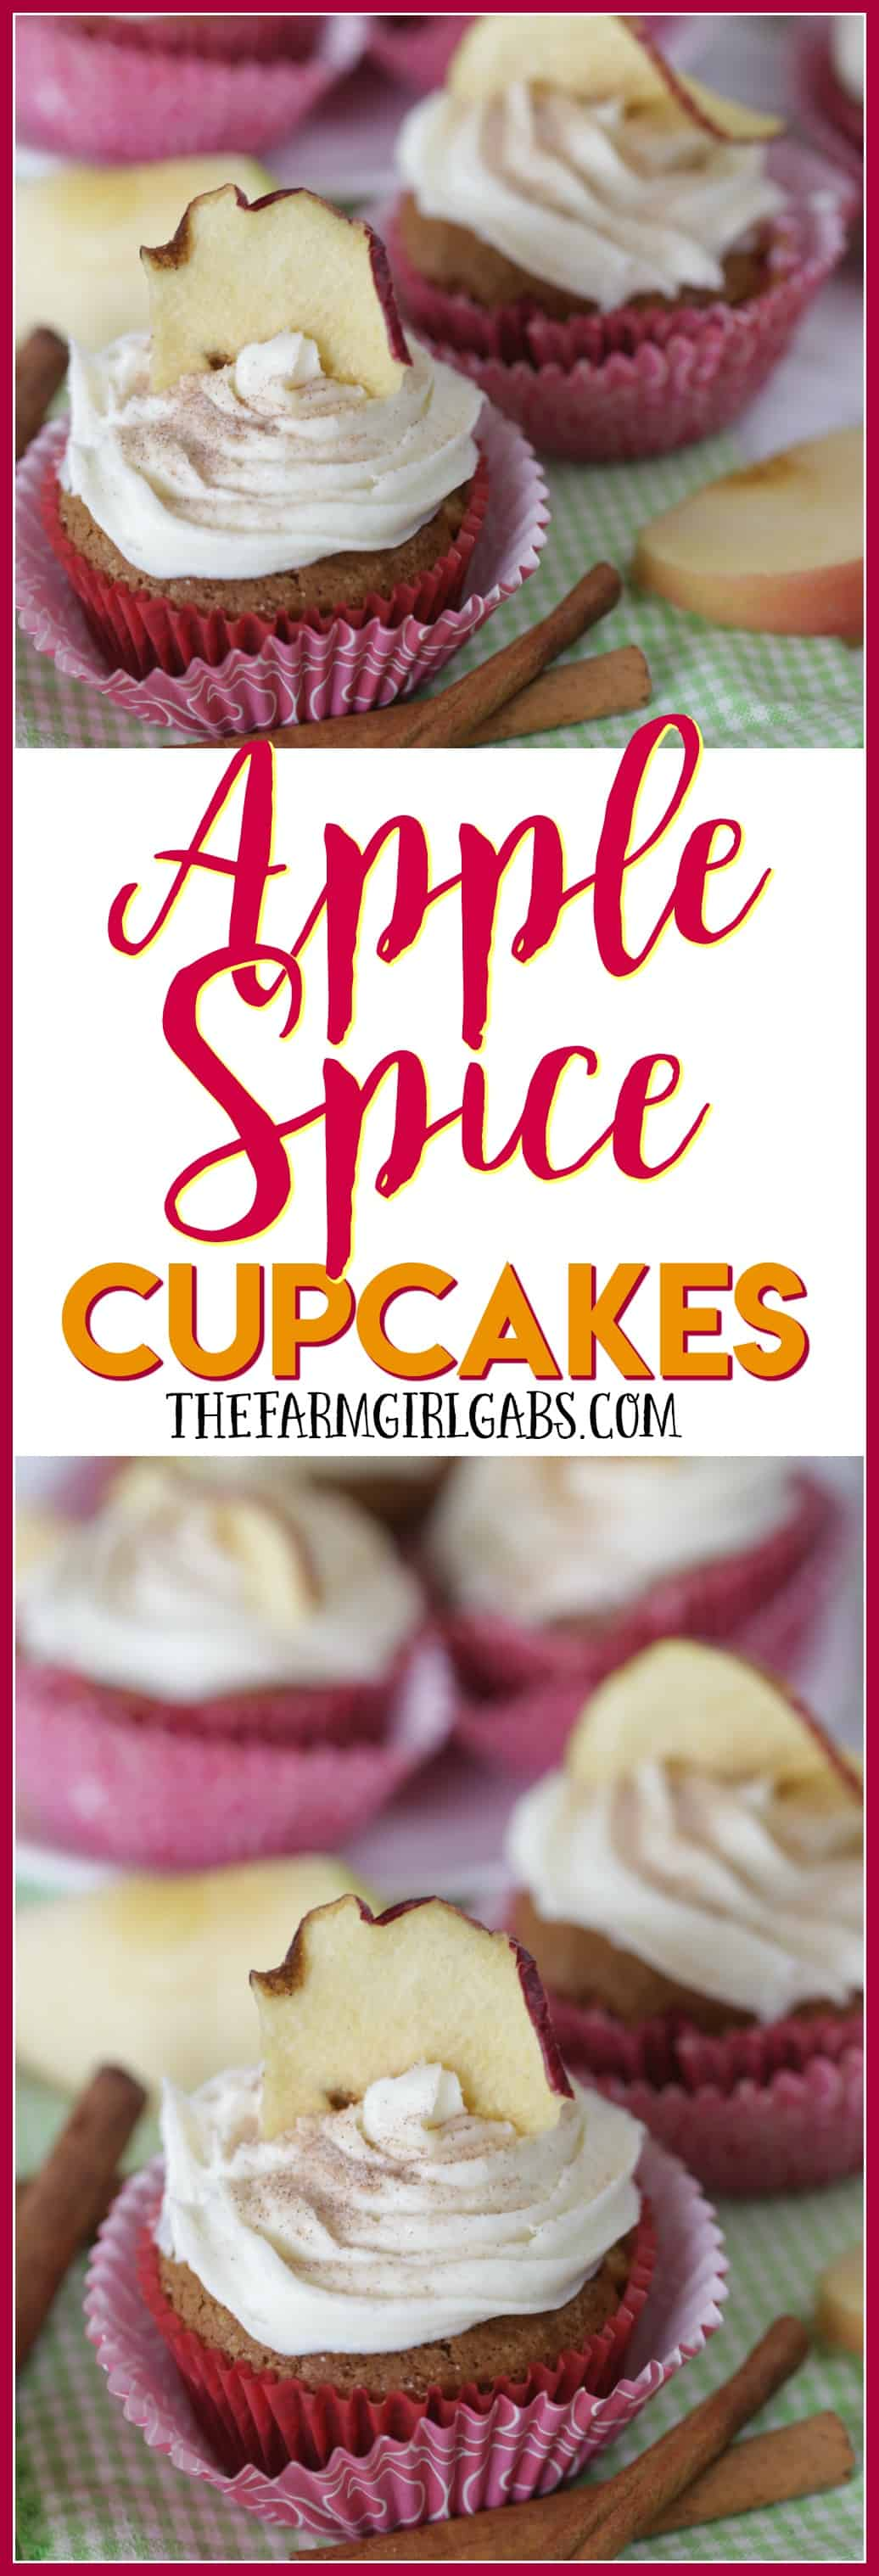 These easy Apple Spice Cupcakes are full of sweet apples and lots of spice. They are the perfect fall treat. #Ad #FunWithFrosting #DoughboySurprise